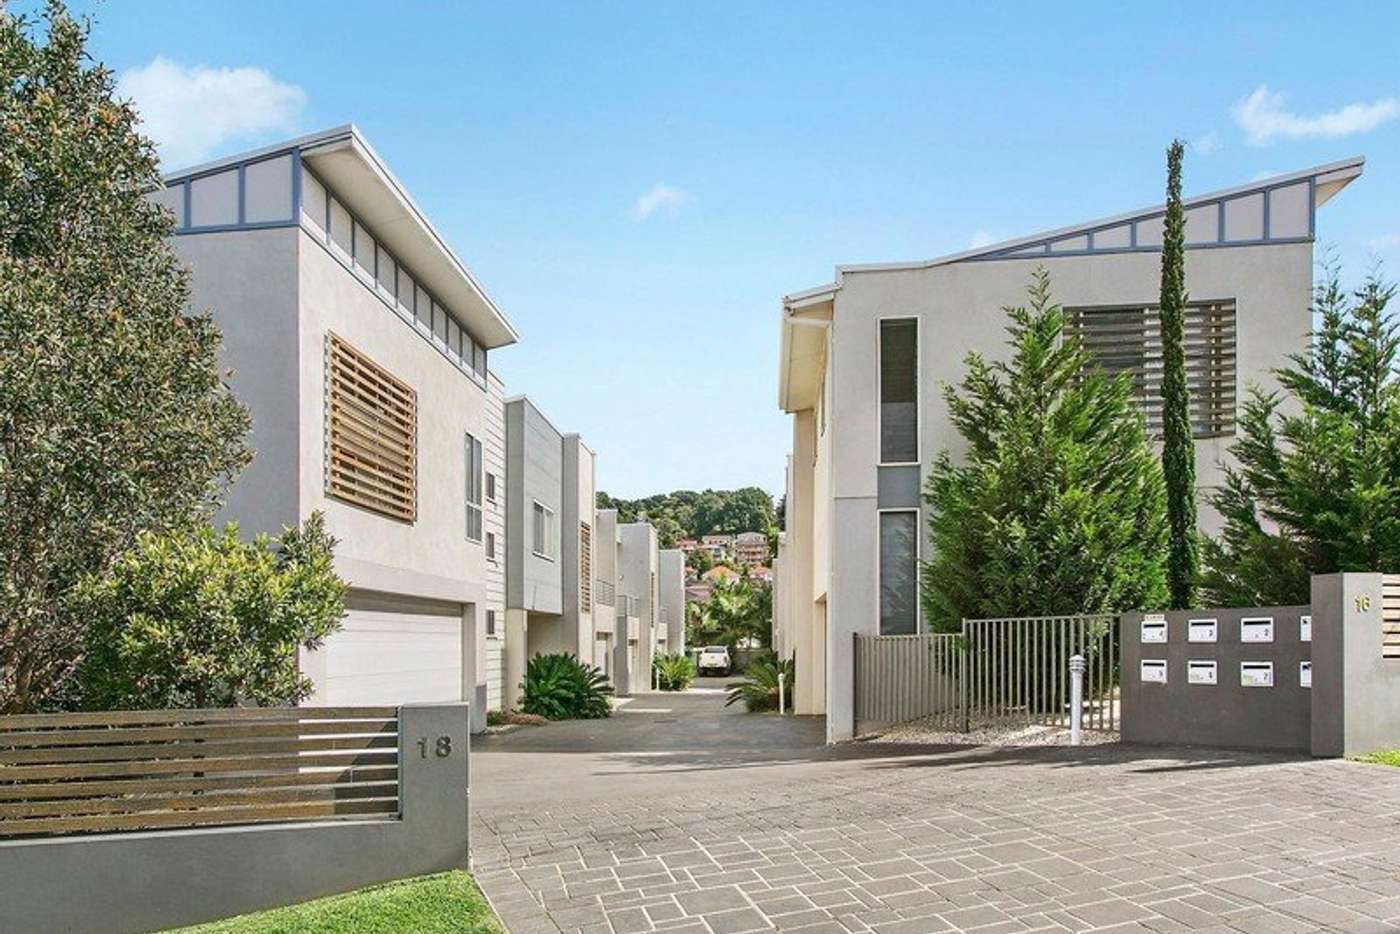 Main view of Homely townhouse listing, 2/16 Strathearn Avenue, Wollongong NSW 2500